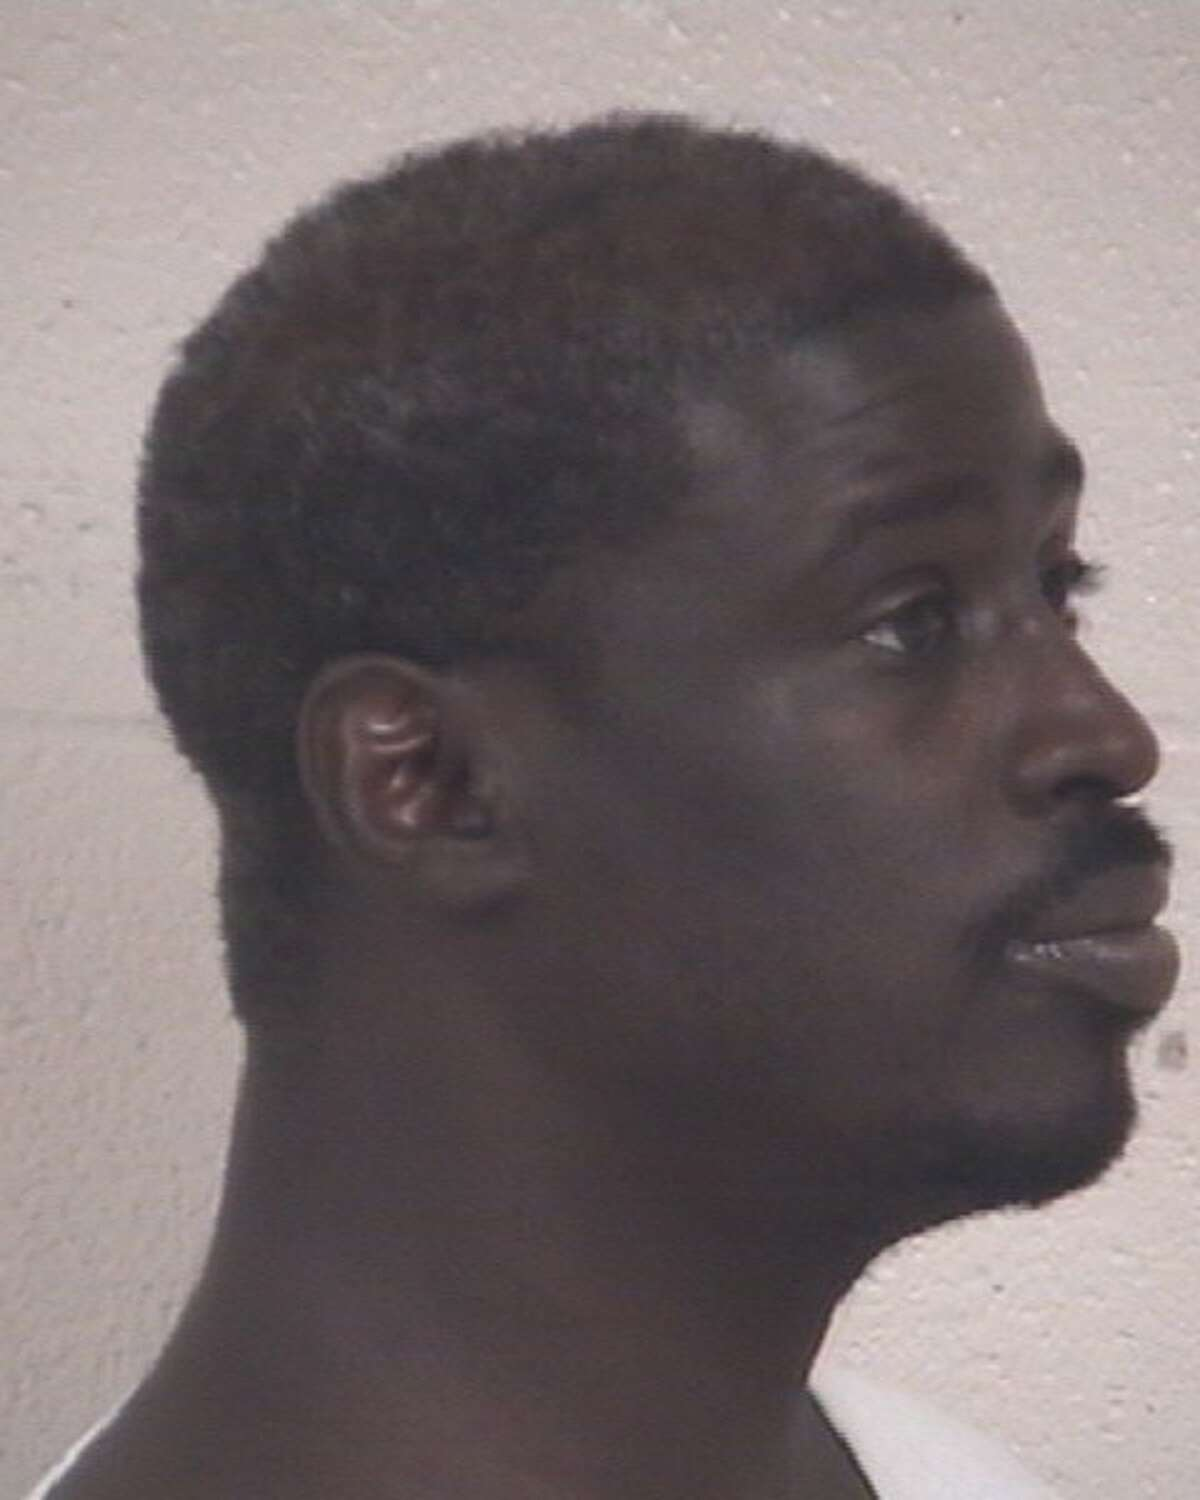 Charles Devan Fulton Sr., 39, was found guilty by a U.S. District Court jury in Houston on five counts related to sex trafficking of minors, July 6, 2016. Fulton, of Galveston, is set for sentencing in October, 2016.